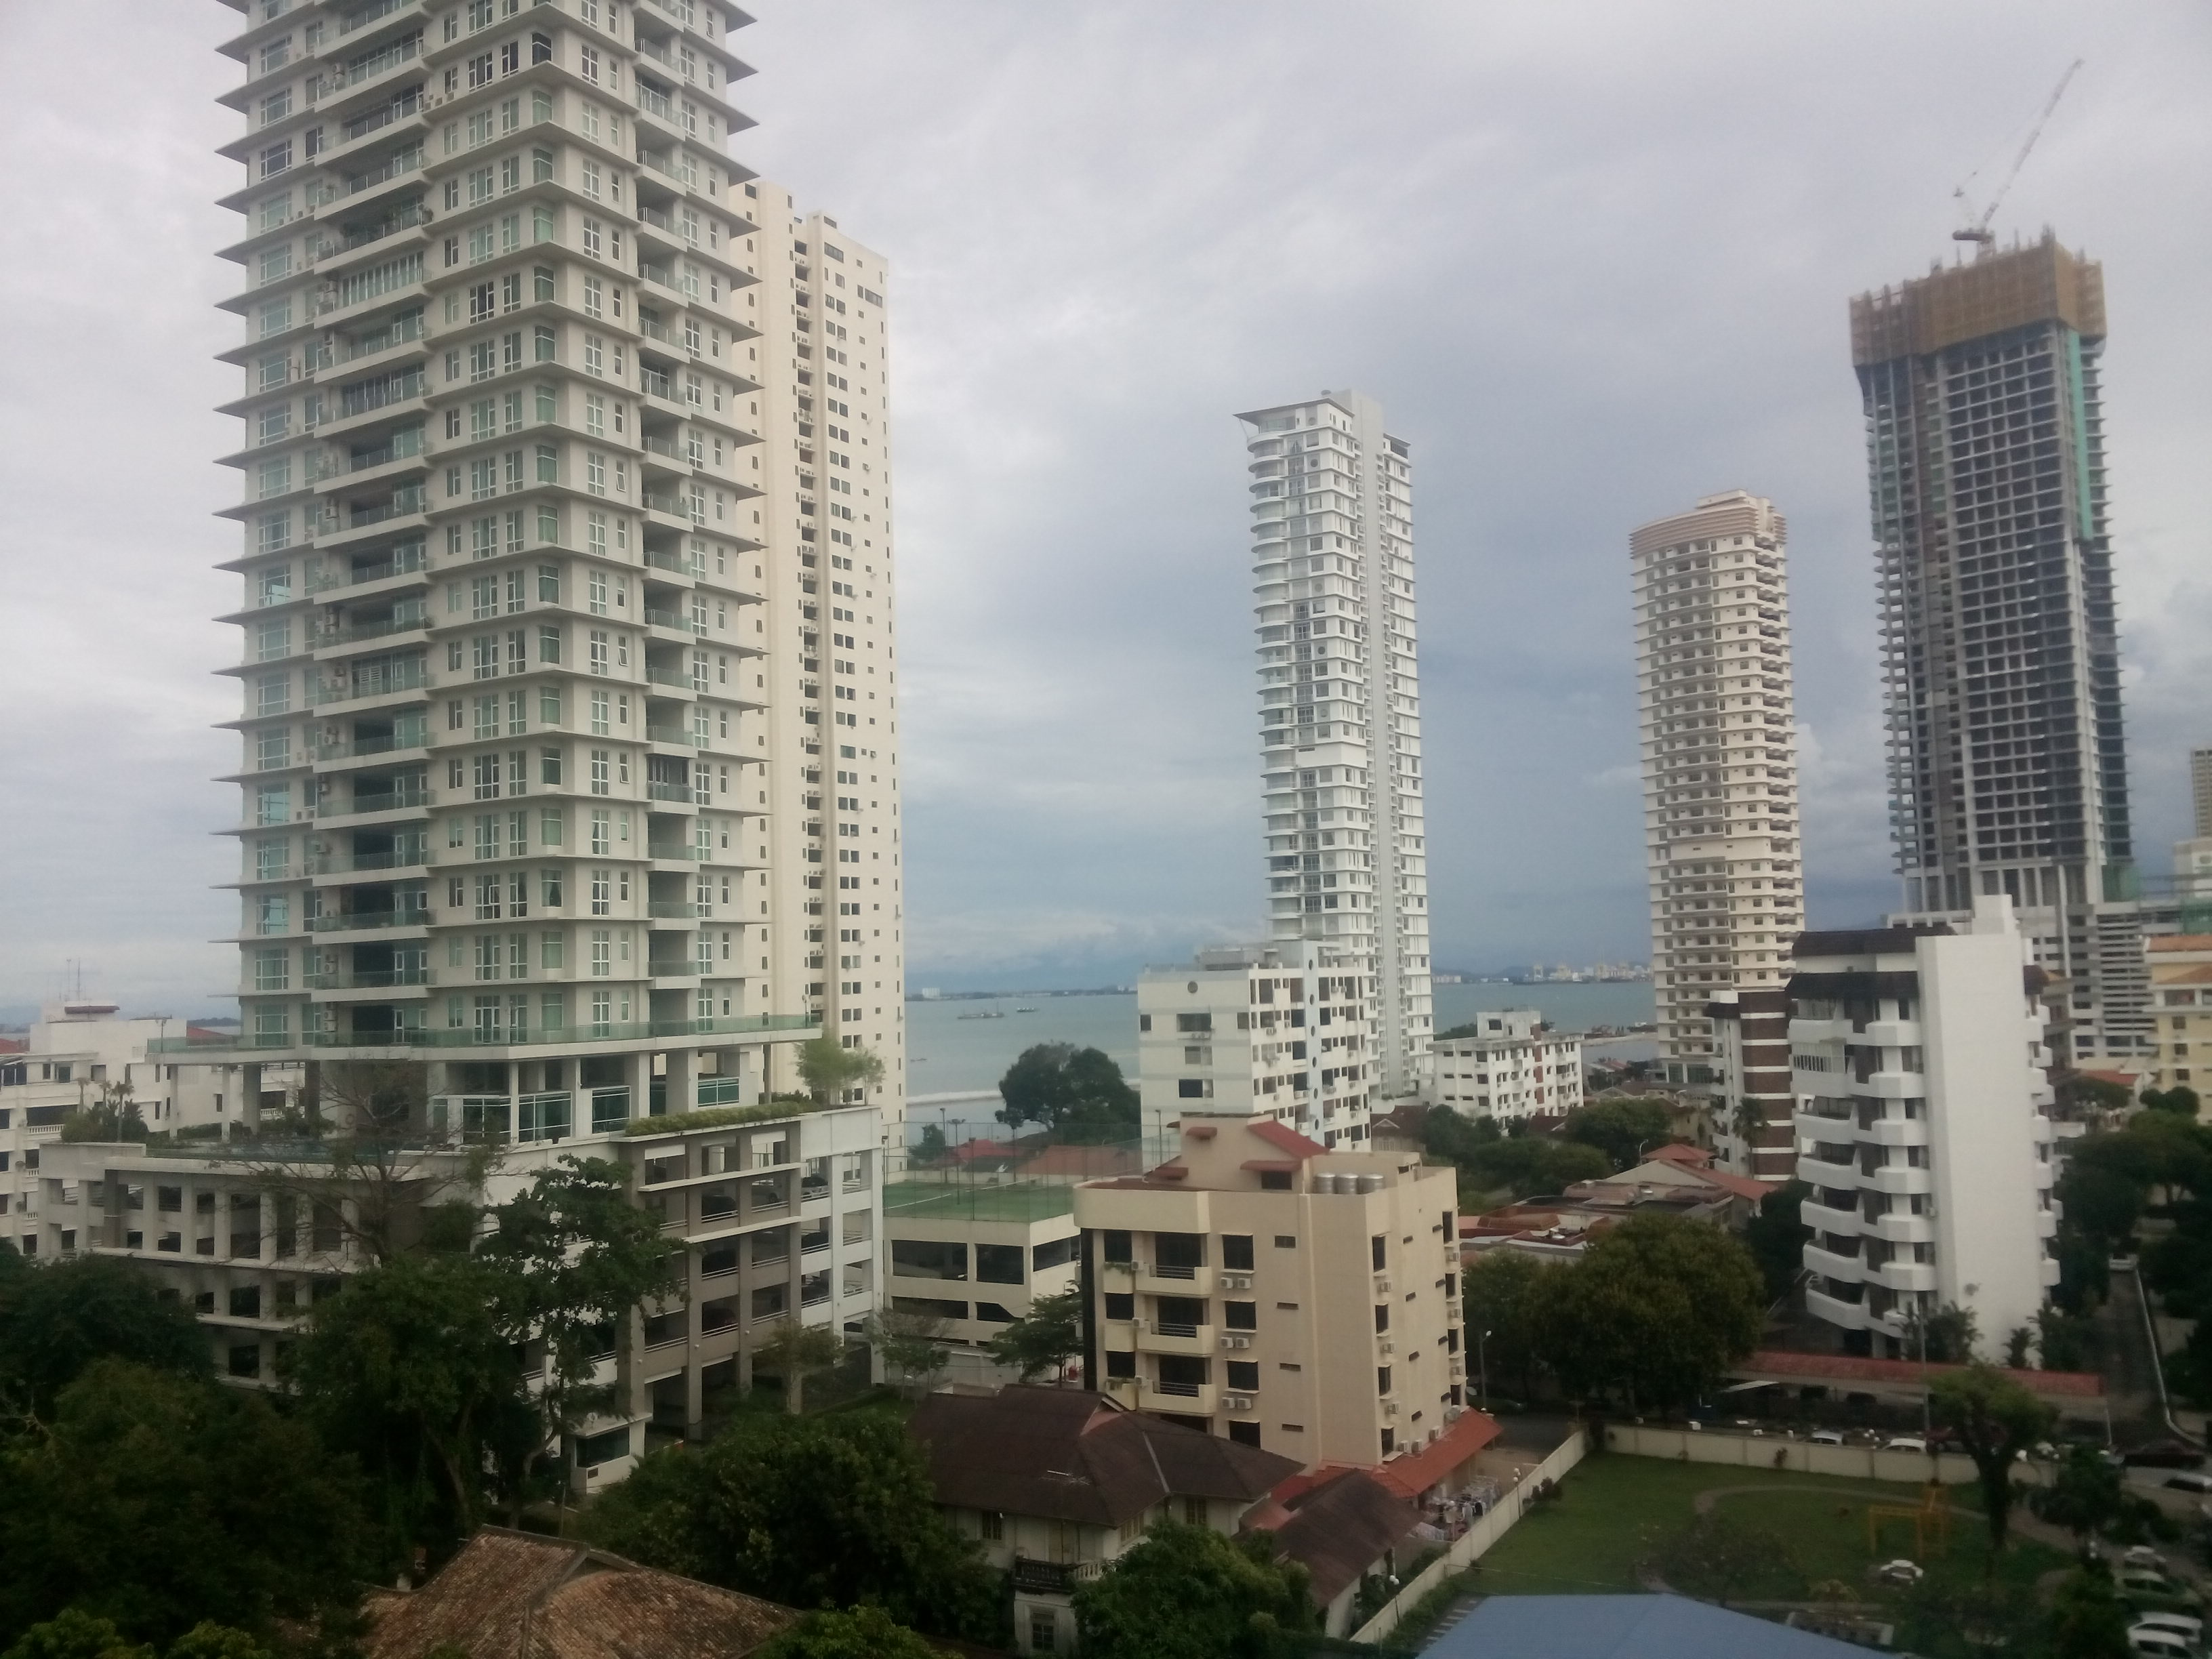 View of tall white condos and hotels, with the sea in the distance